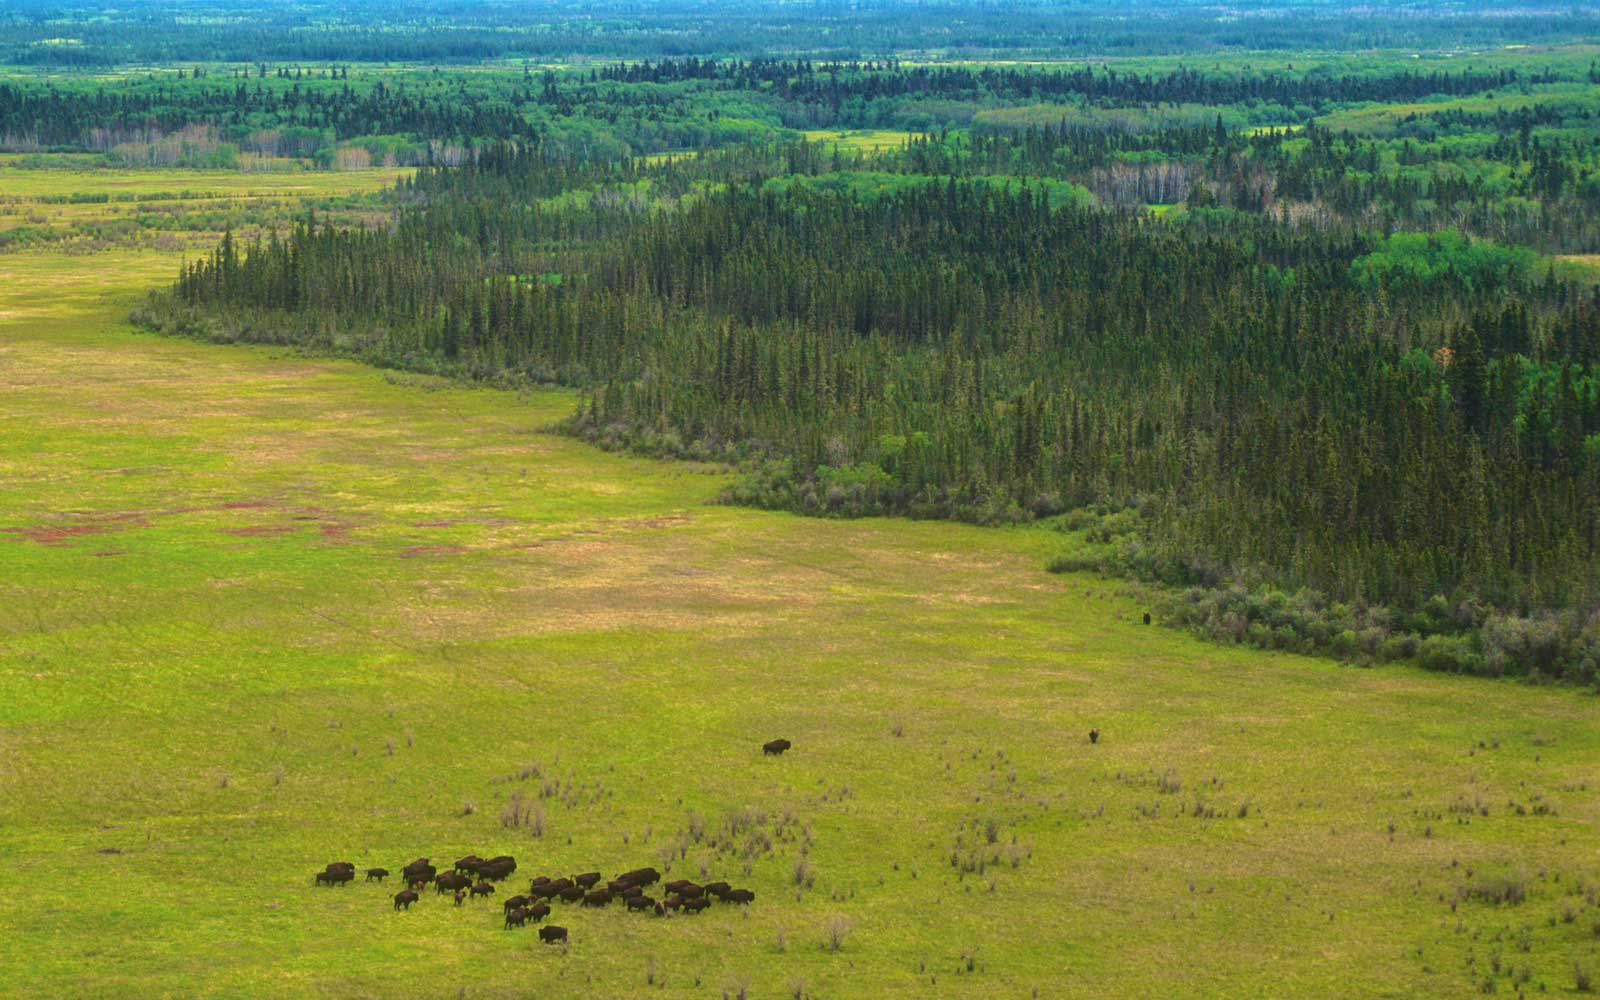 Wood Buffalo National Park